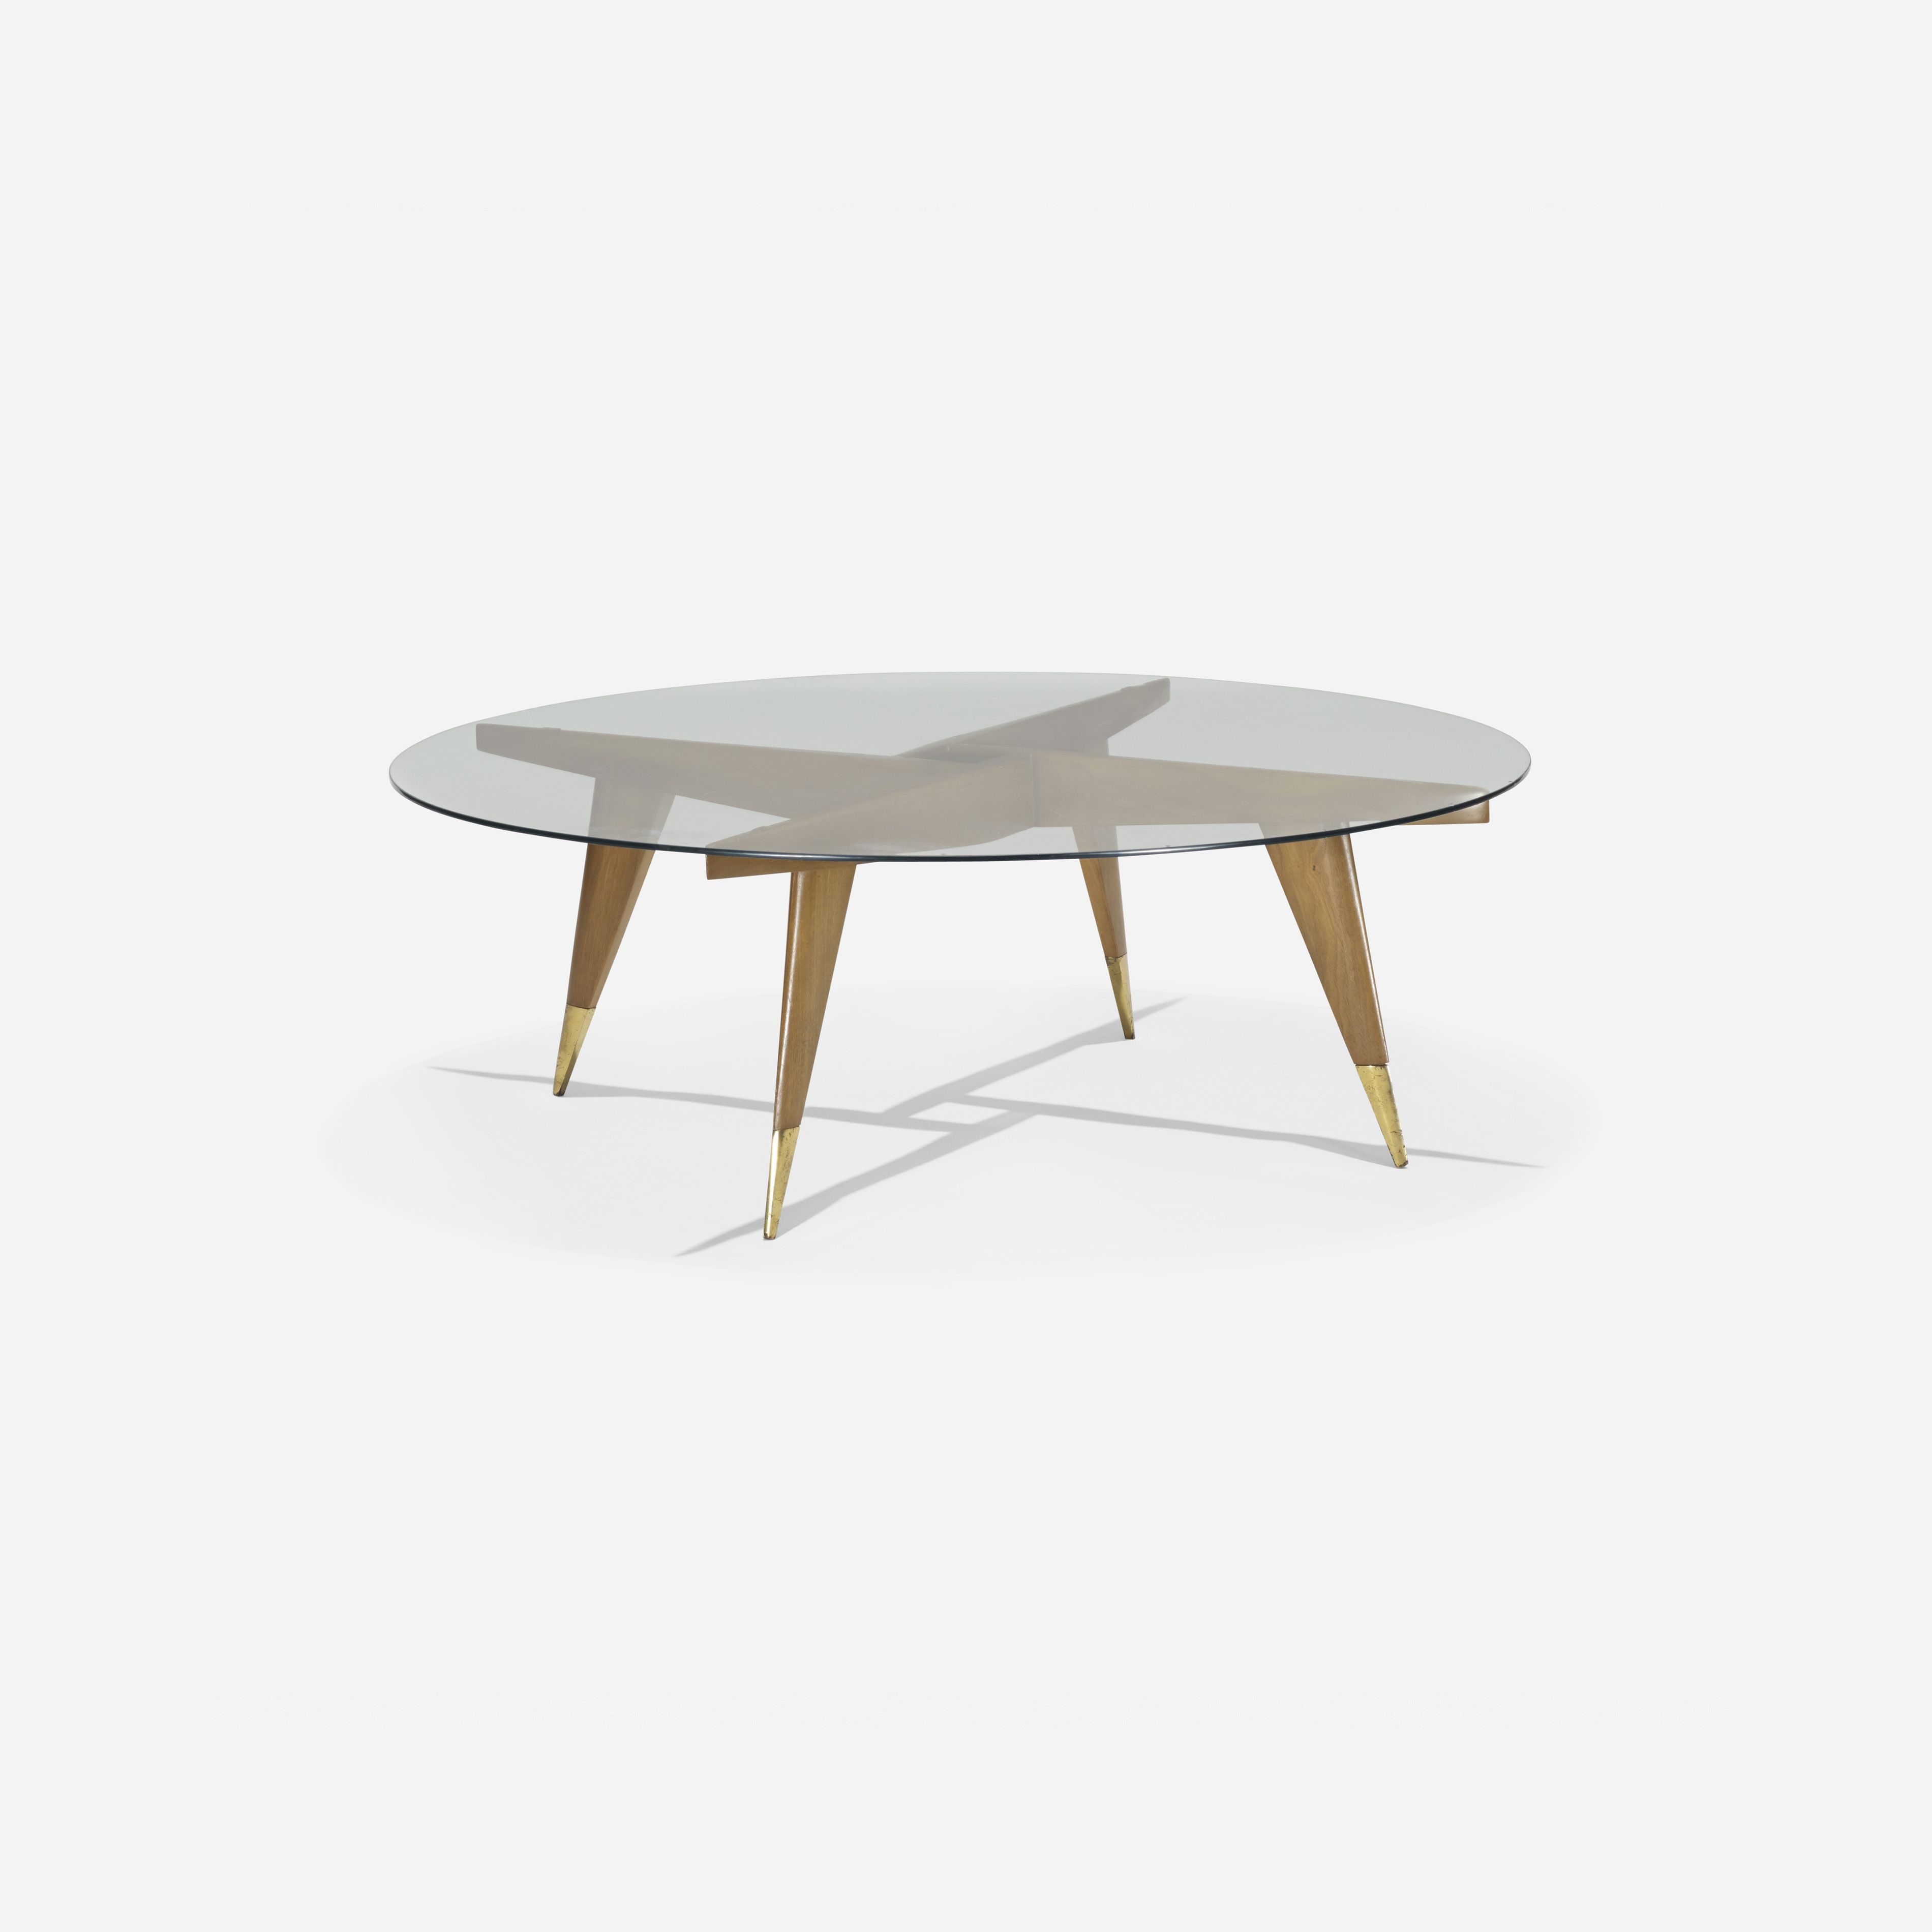 285 Gio Ponti coffee table Design 23 October 2014 Auctions